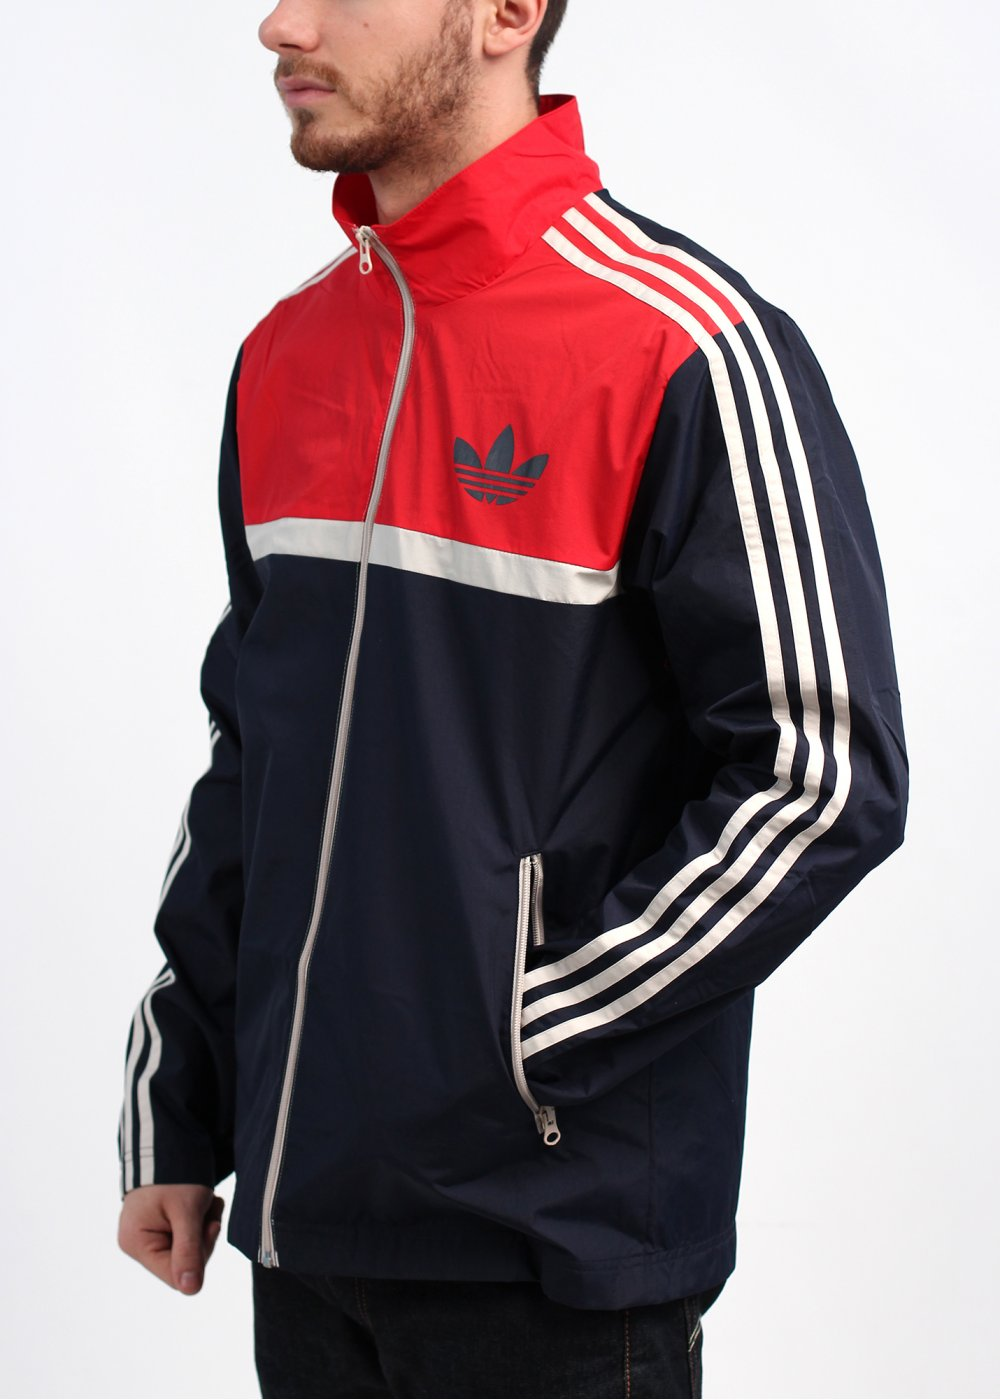 adidas originals jacket vintage. Black Bedroom Furniture Sets. Home Design Ideas